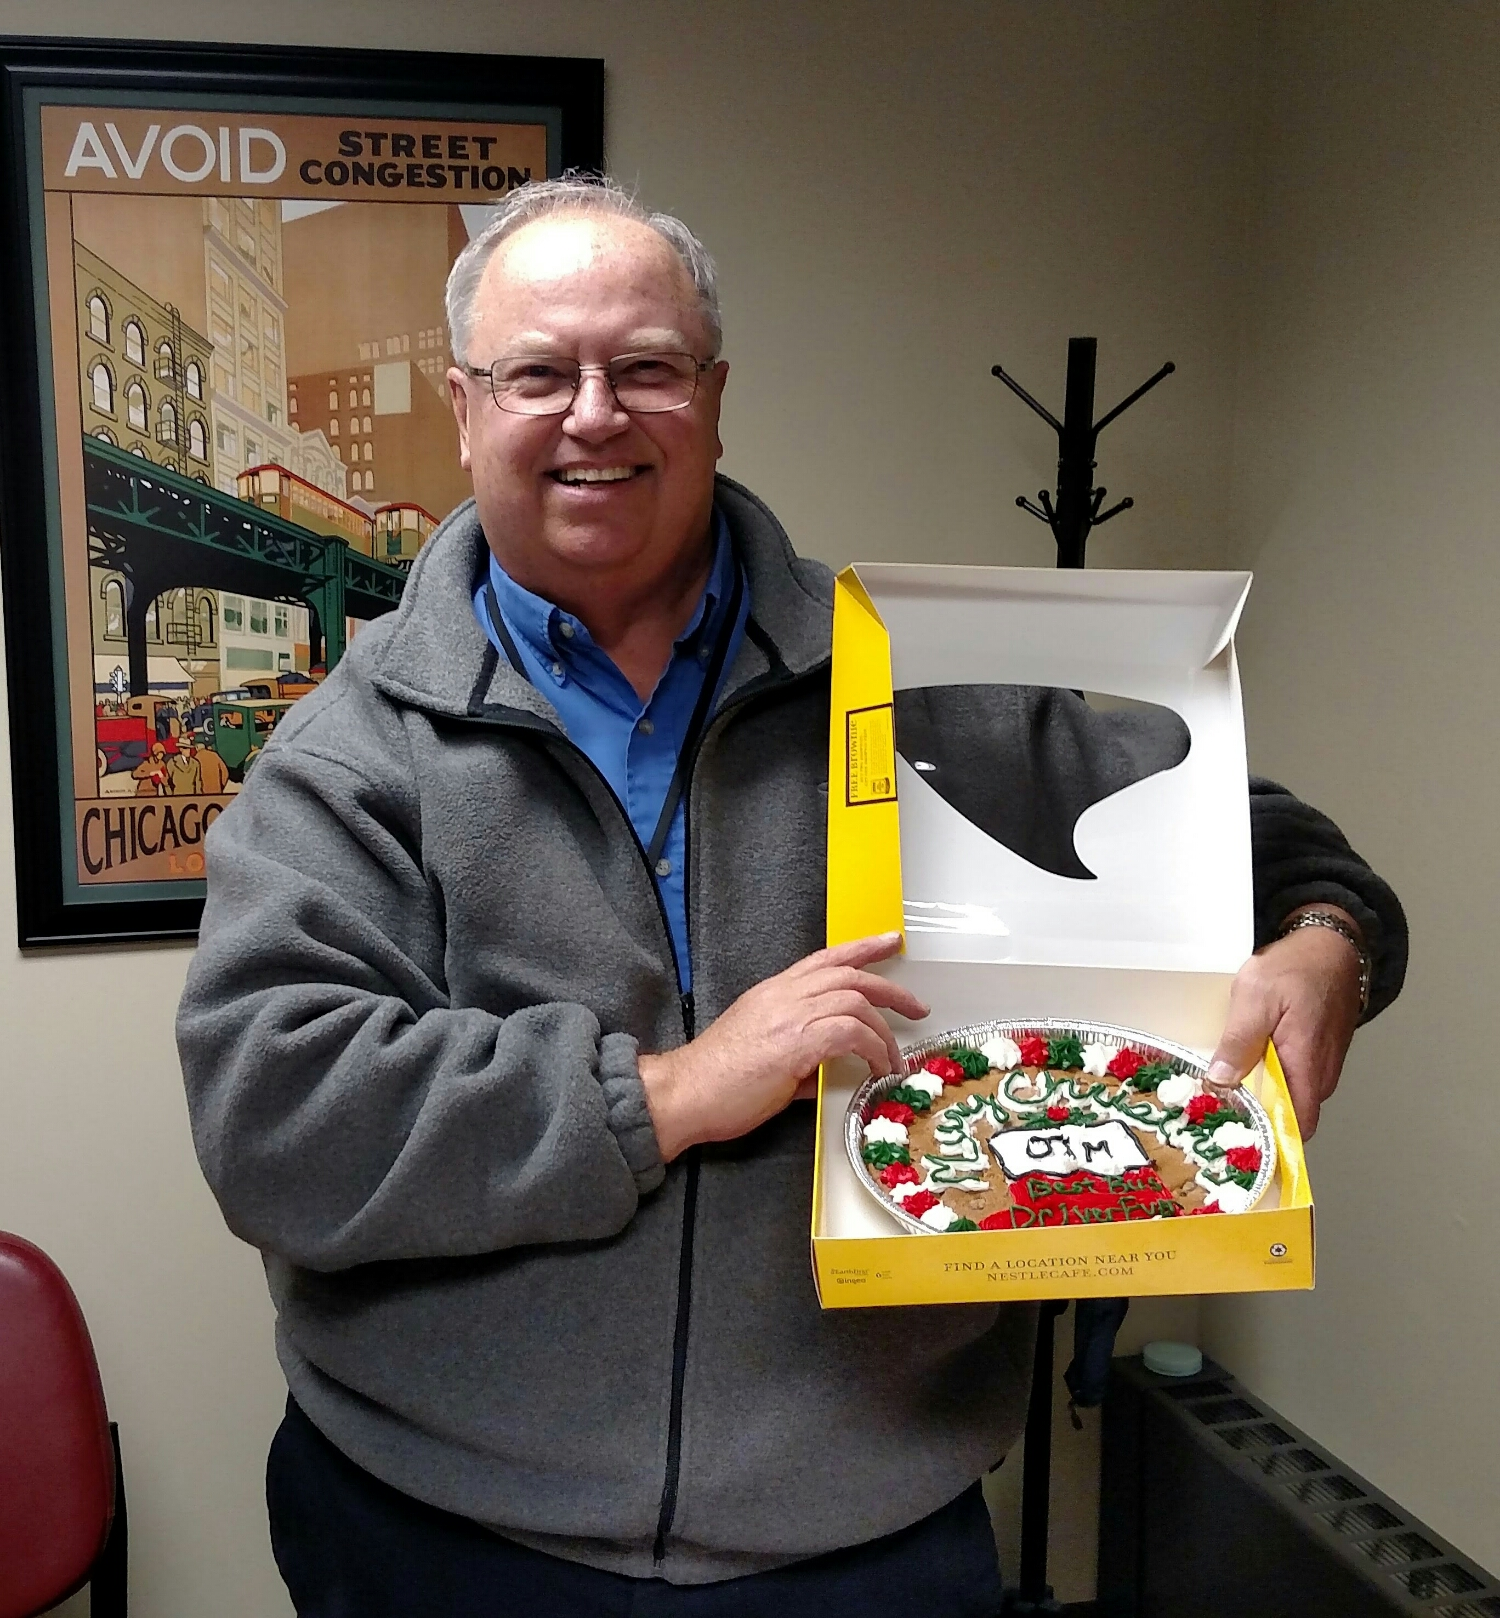 CWTA driver Jim, our Traverse City route driver, was given a tastey Christmas gift from one of his passengers for the great work that he does!